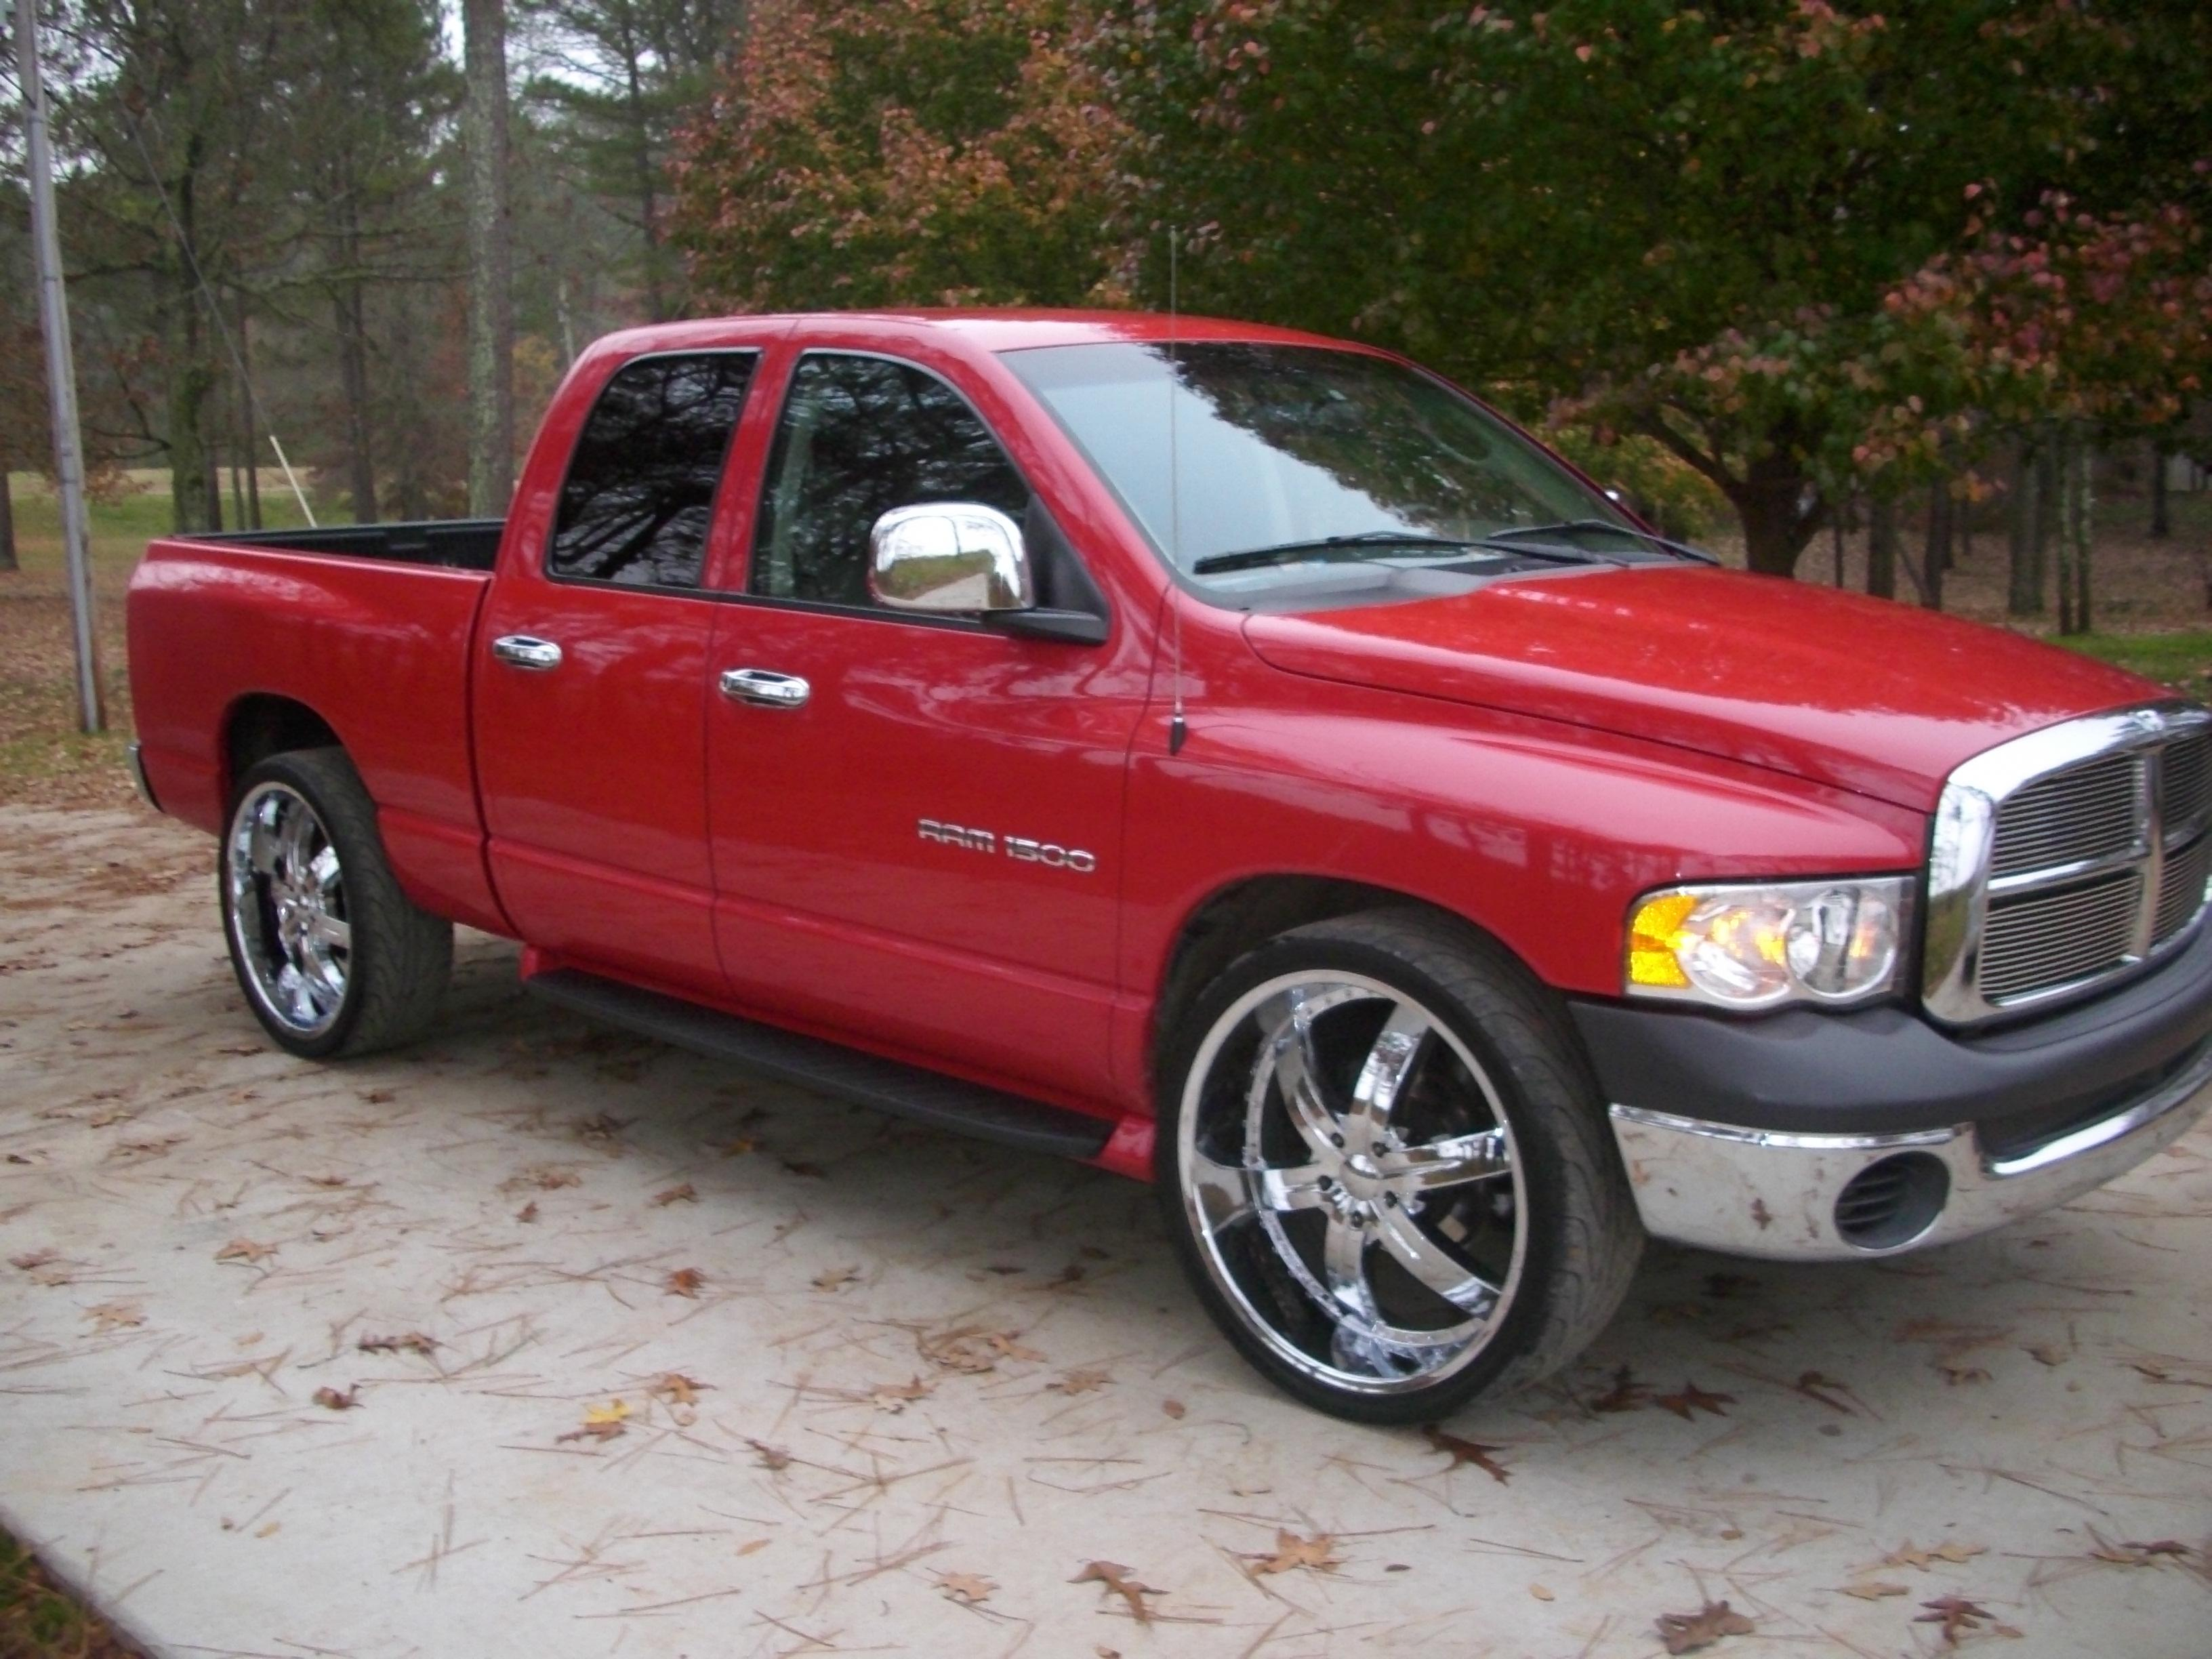 kevinmur 2002 dodge ram 1500 regular cab specs photos modification info at cardomain. Black Bedroom Furniture Sets. Home Design Ideas